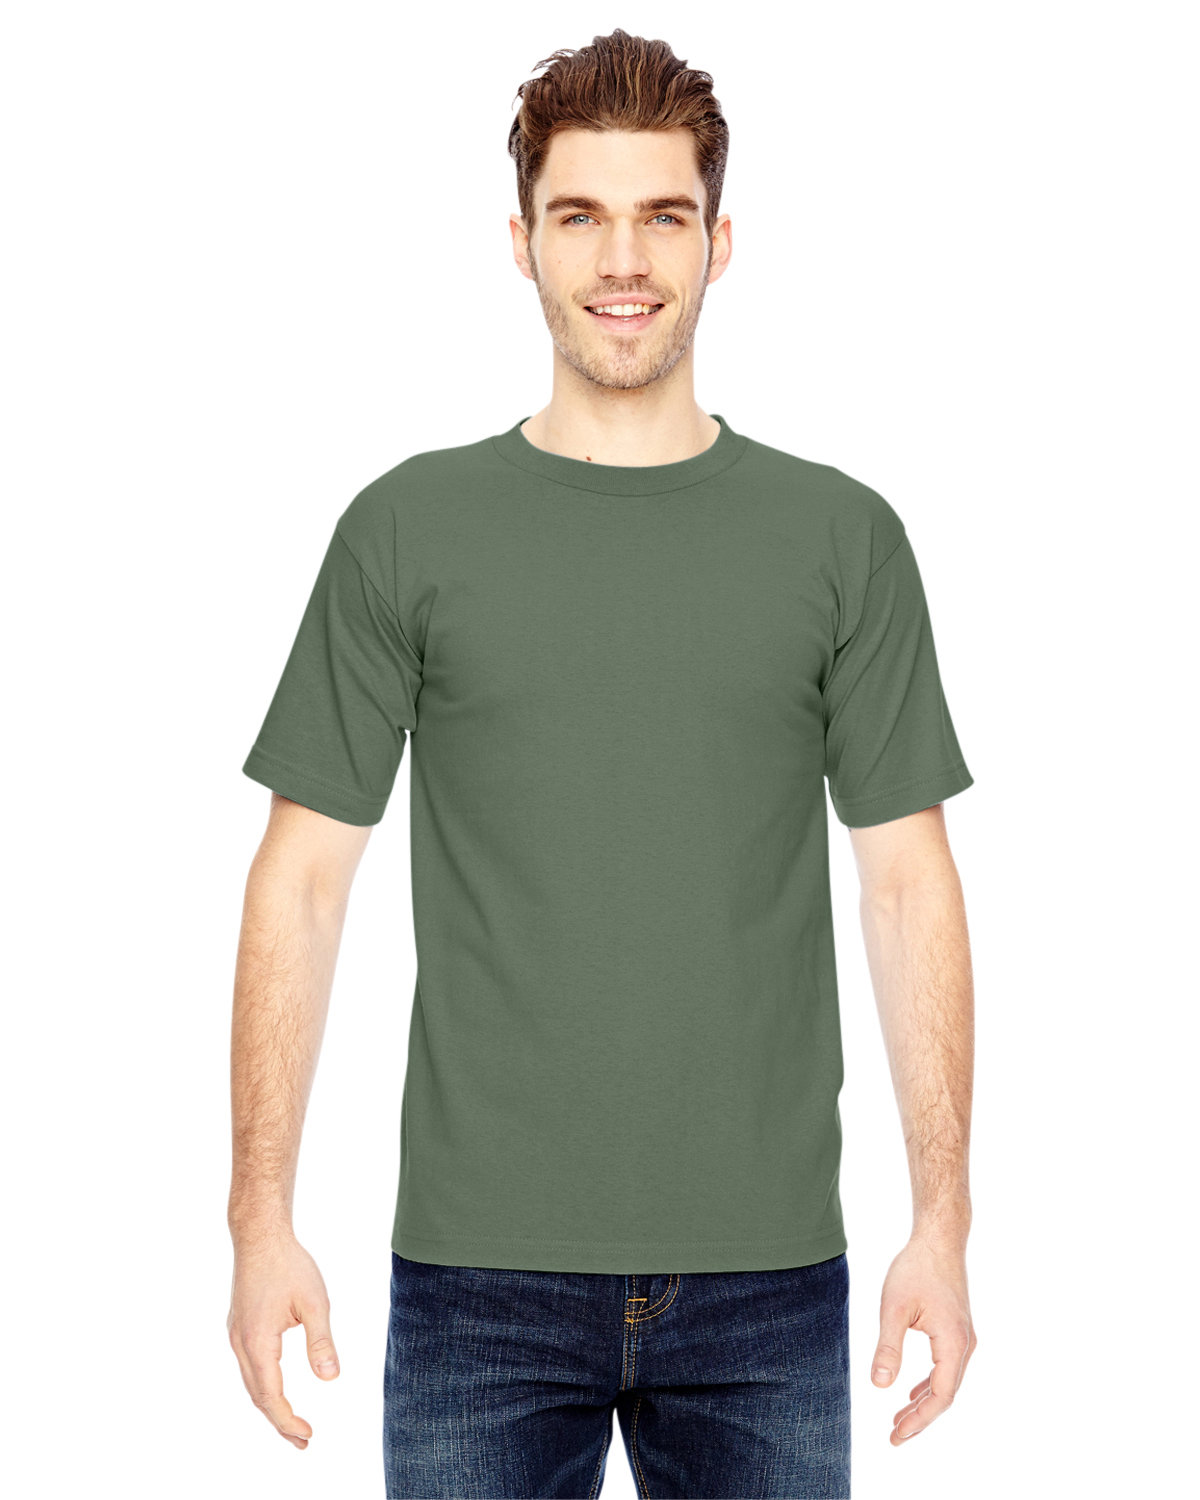 Bayside Adult 6.1 oz., 100% Cotton T-Shirt ARMY GREEN